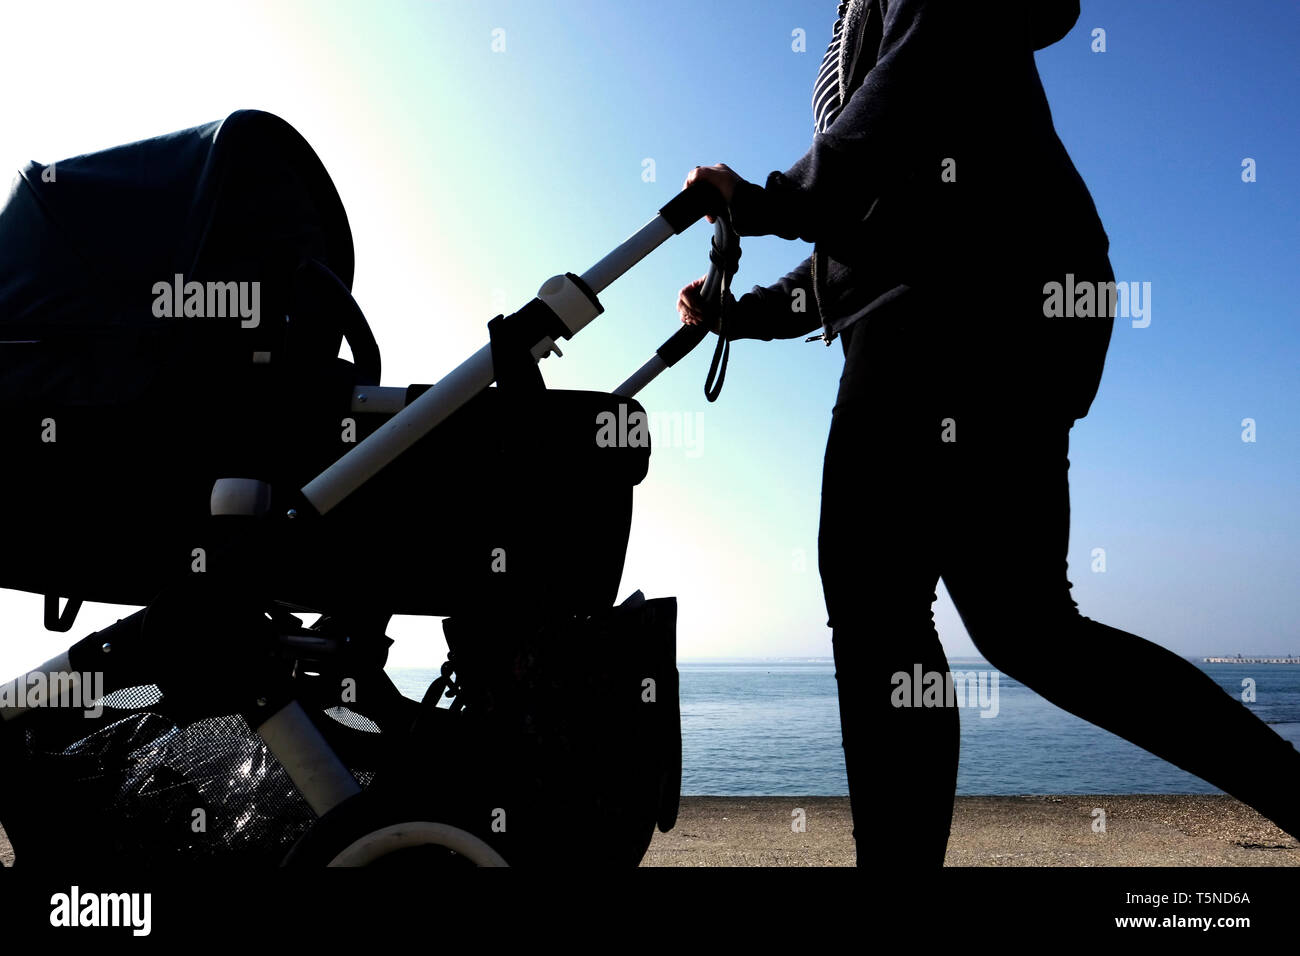 A woman pushing a pram or buggy out for a walk by the seaside partly in silhouette with the sea horizon and blue sky in the background. - Stock Image